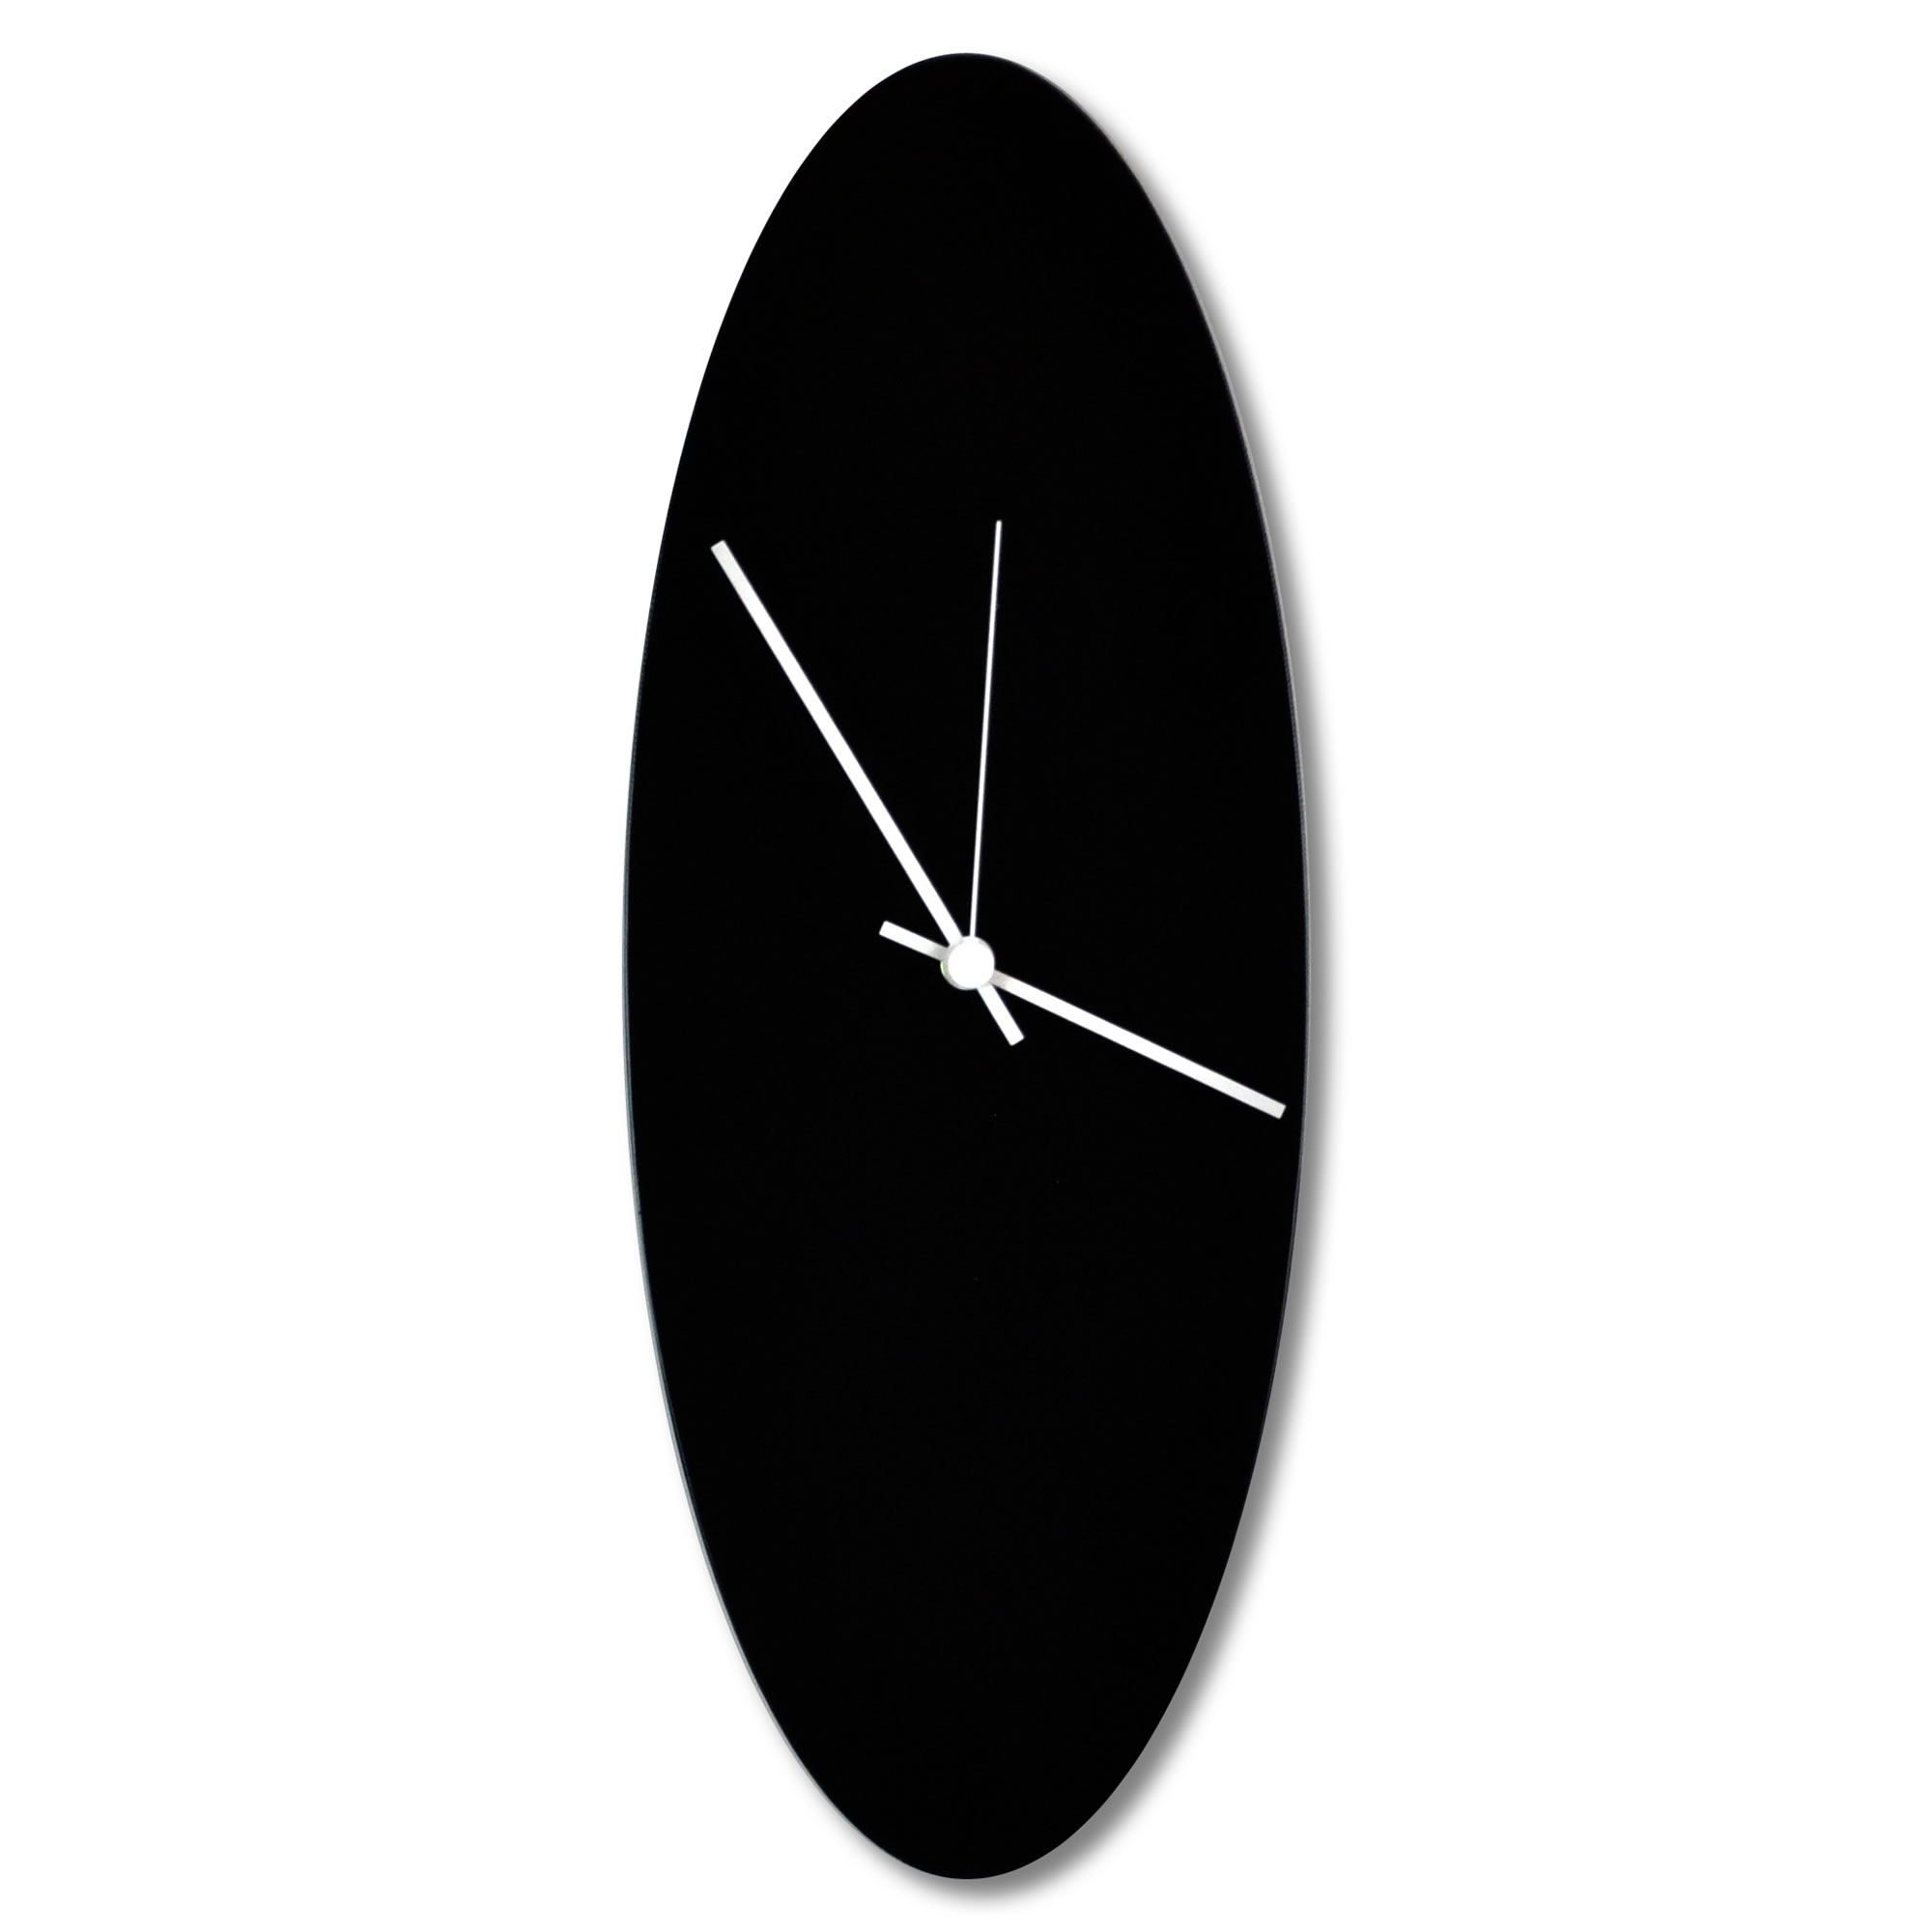 Blackout Ellipse Clock by Adam Schwoeppe - Minimalist Modern Black Metal Clock